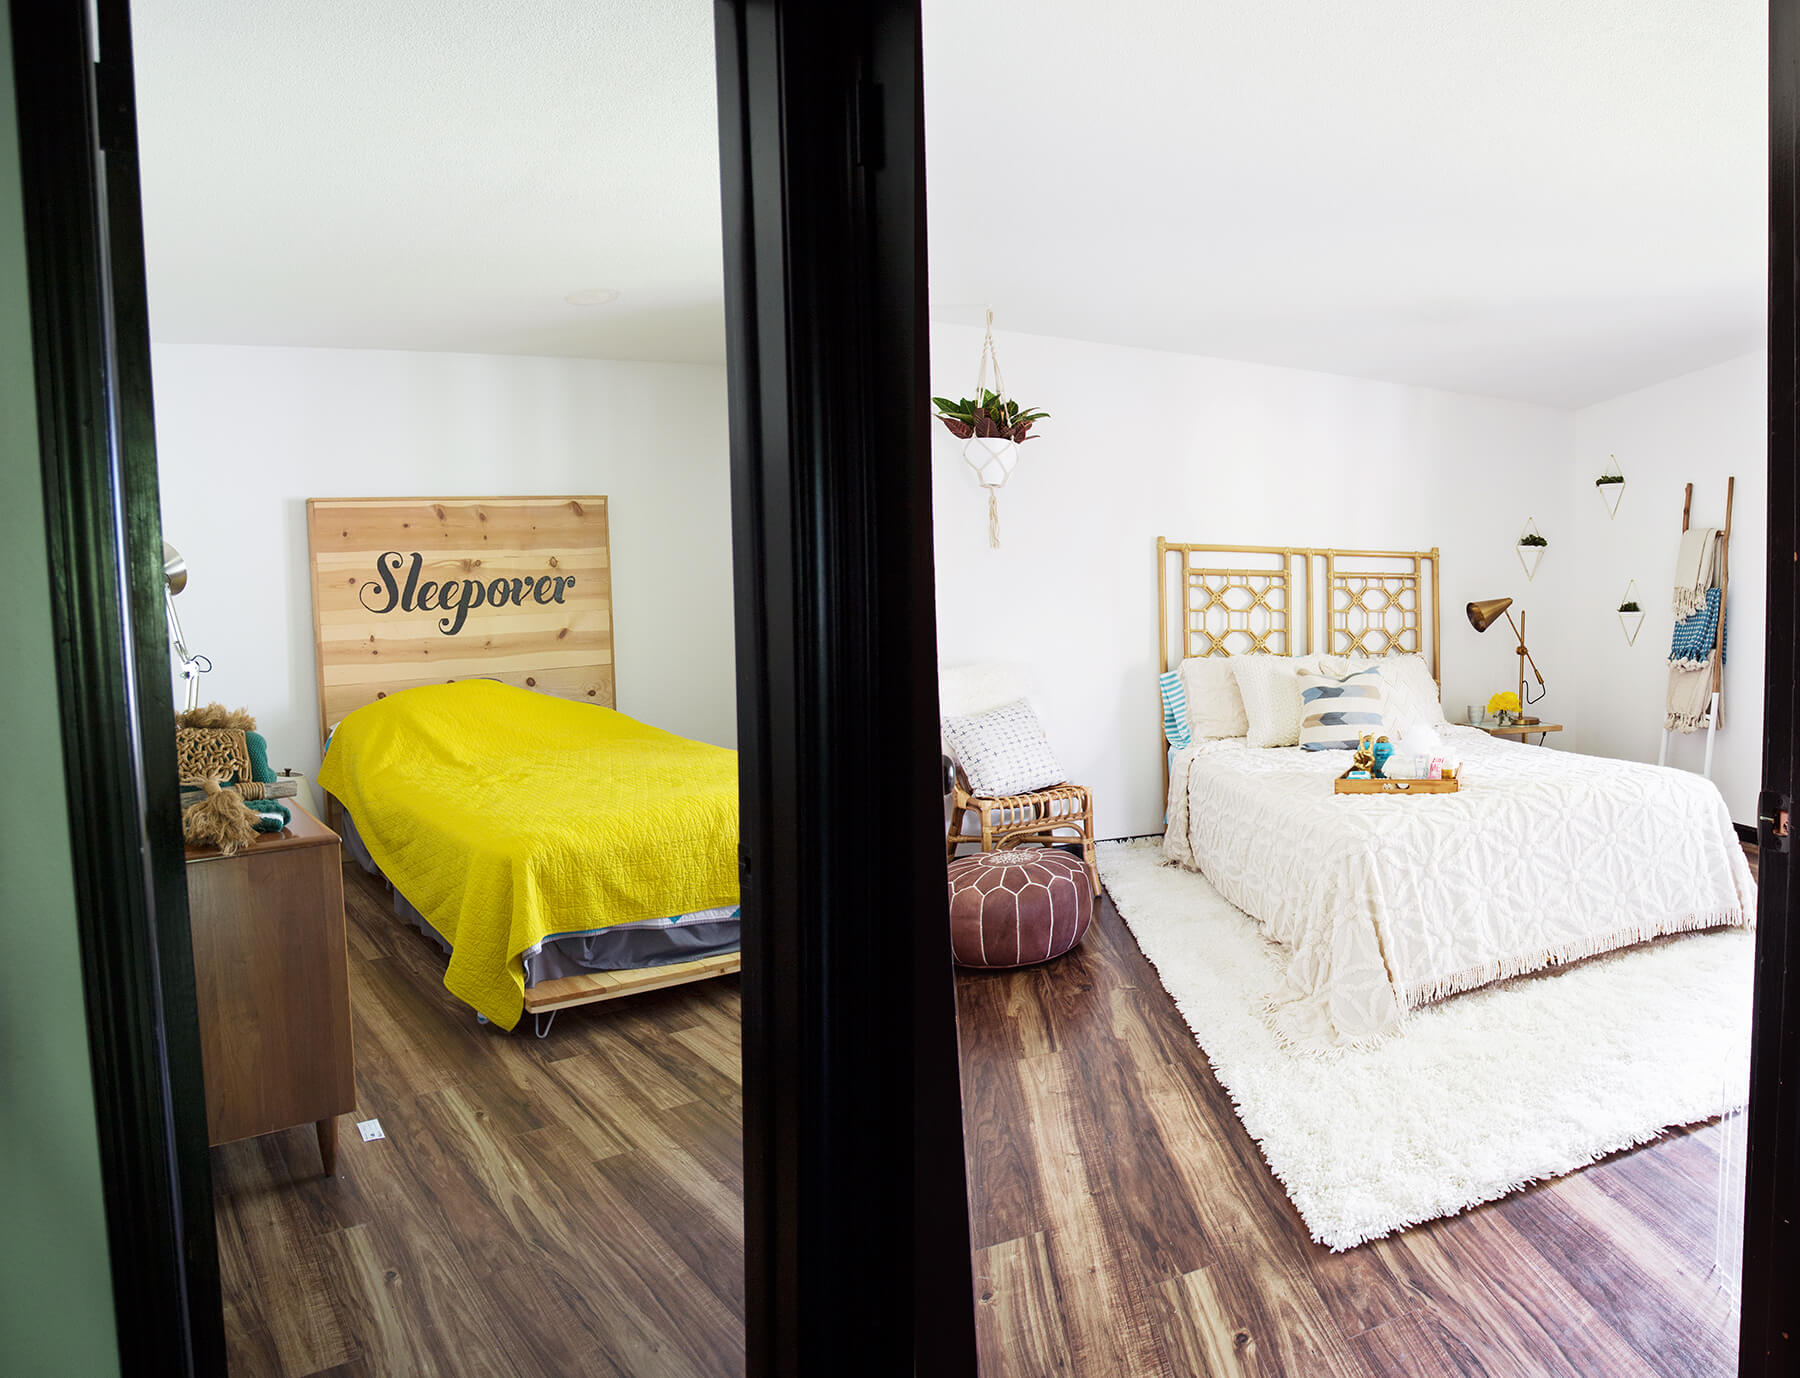 Guest room before and after